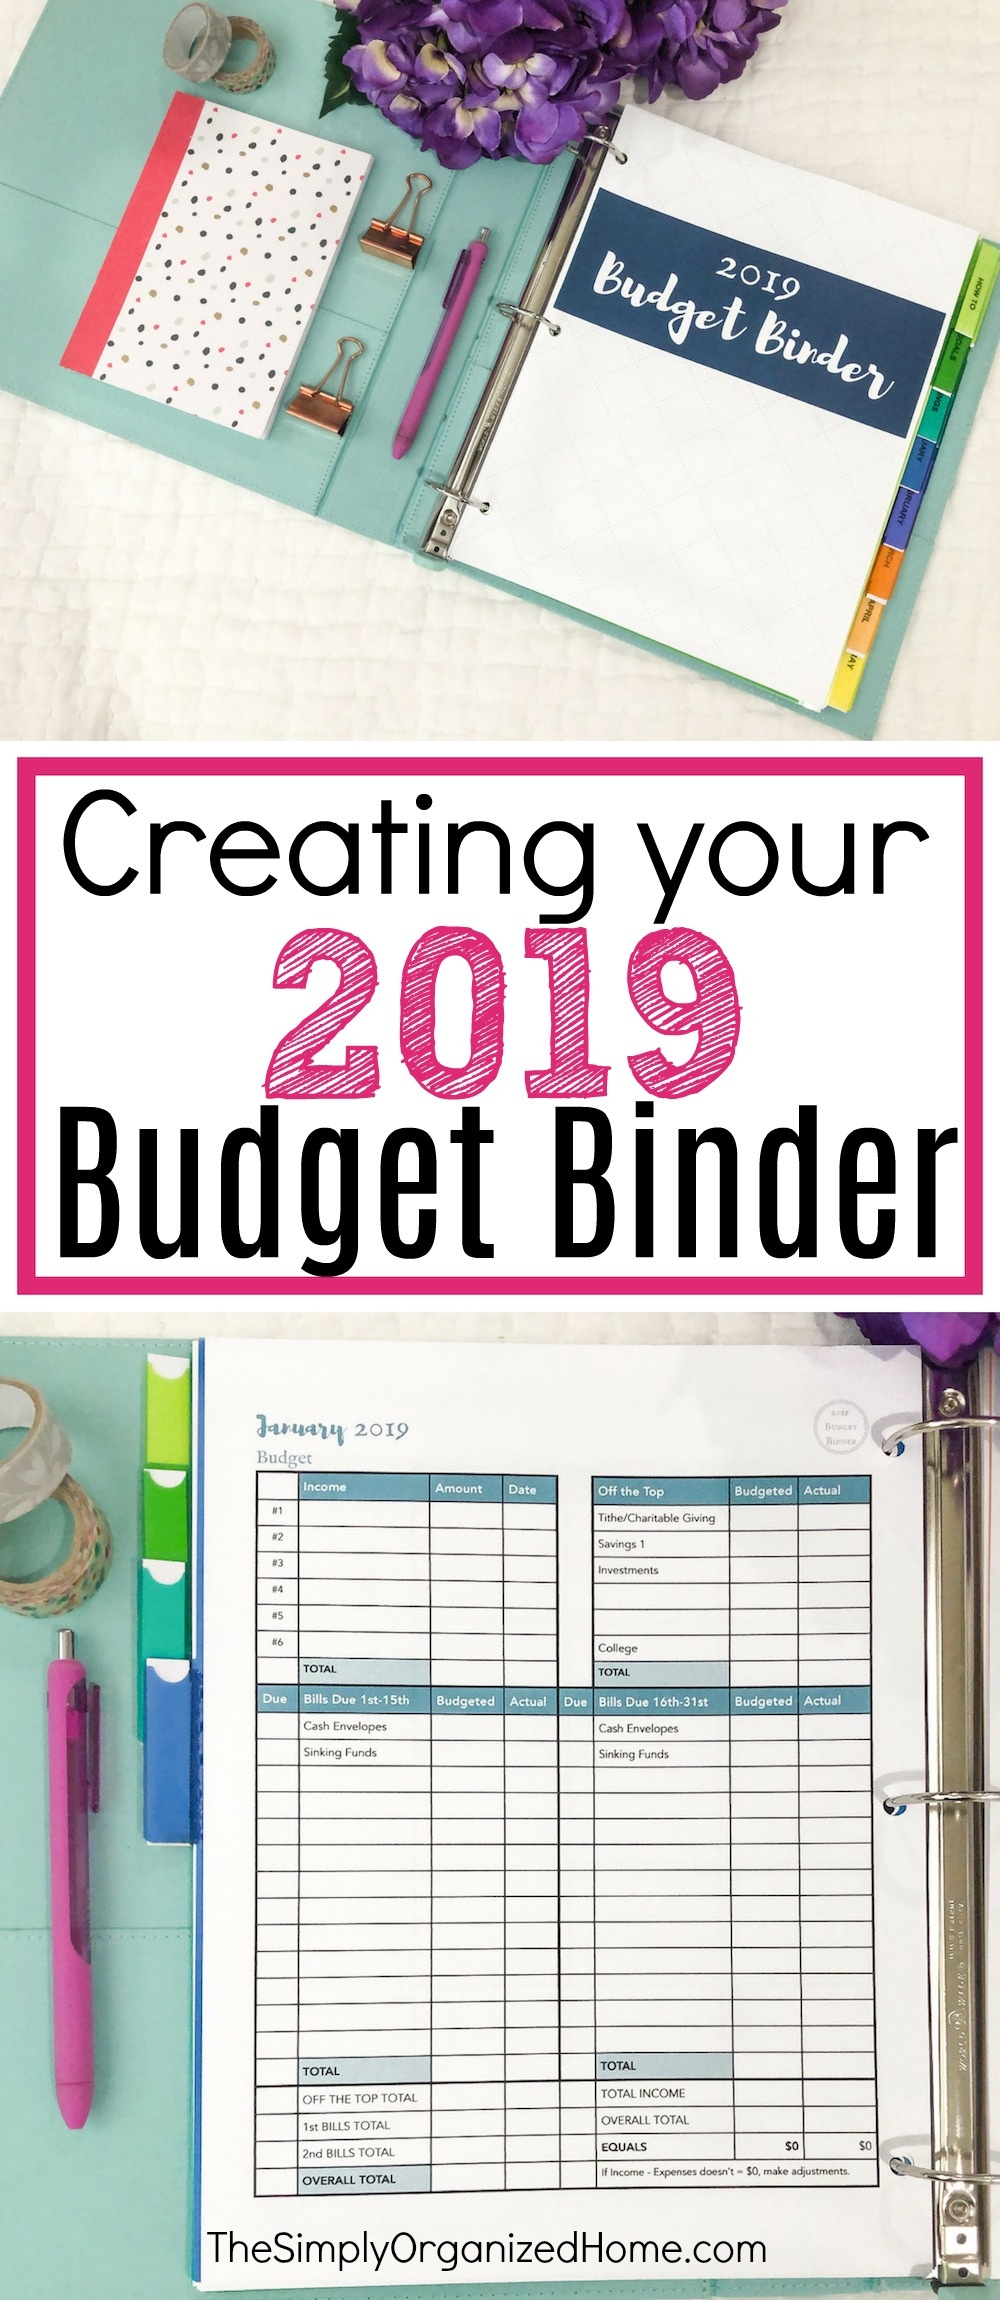 Creating Your 2019 Budget Binder - The Simply Organized Home - Free Printable Budget Binder